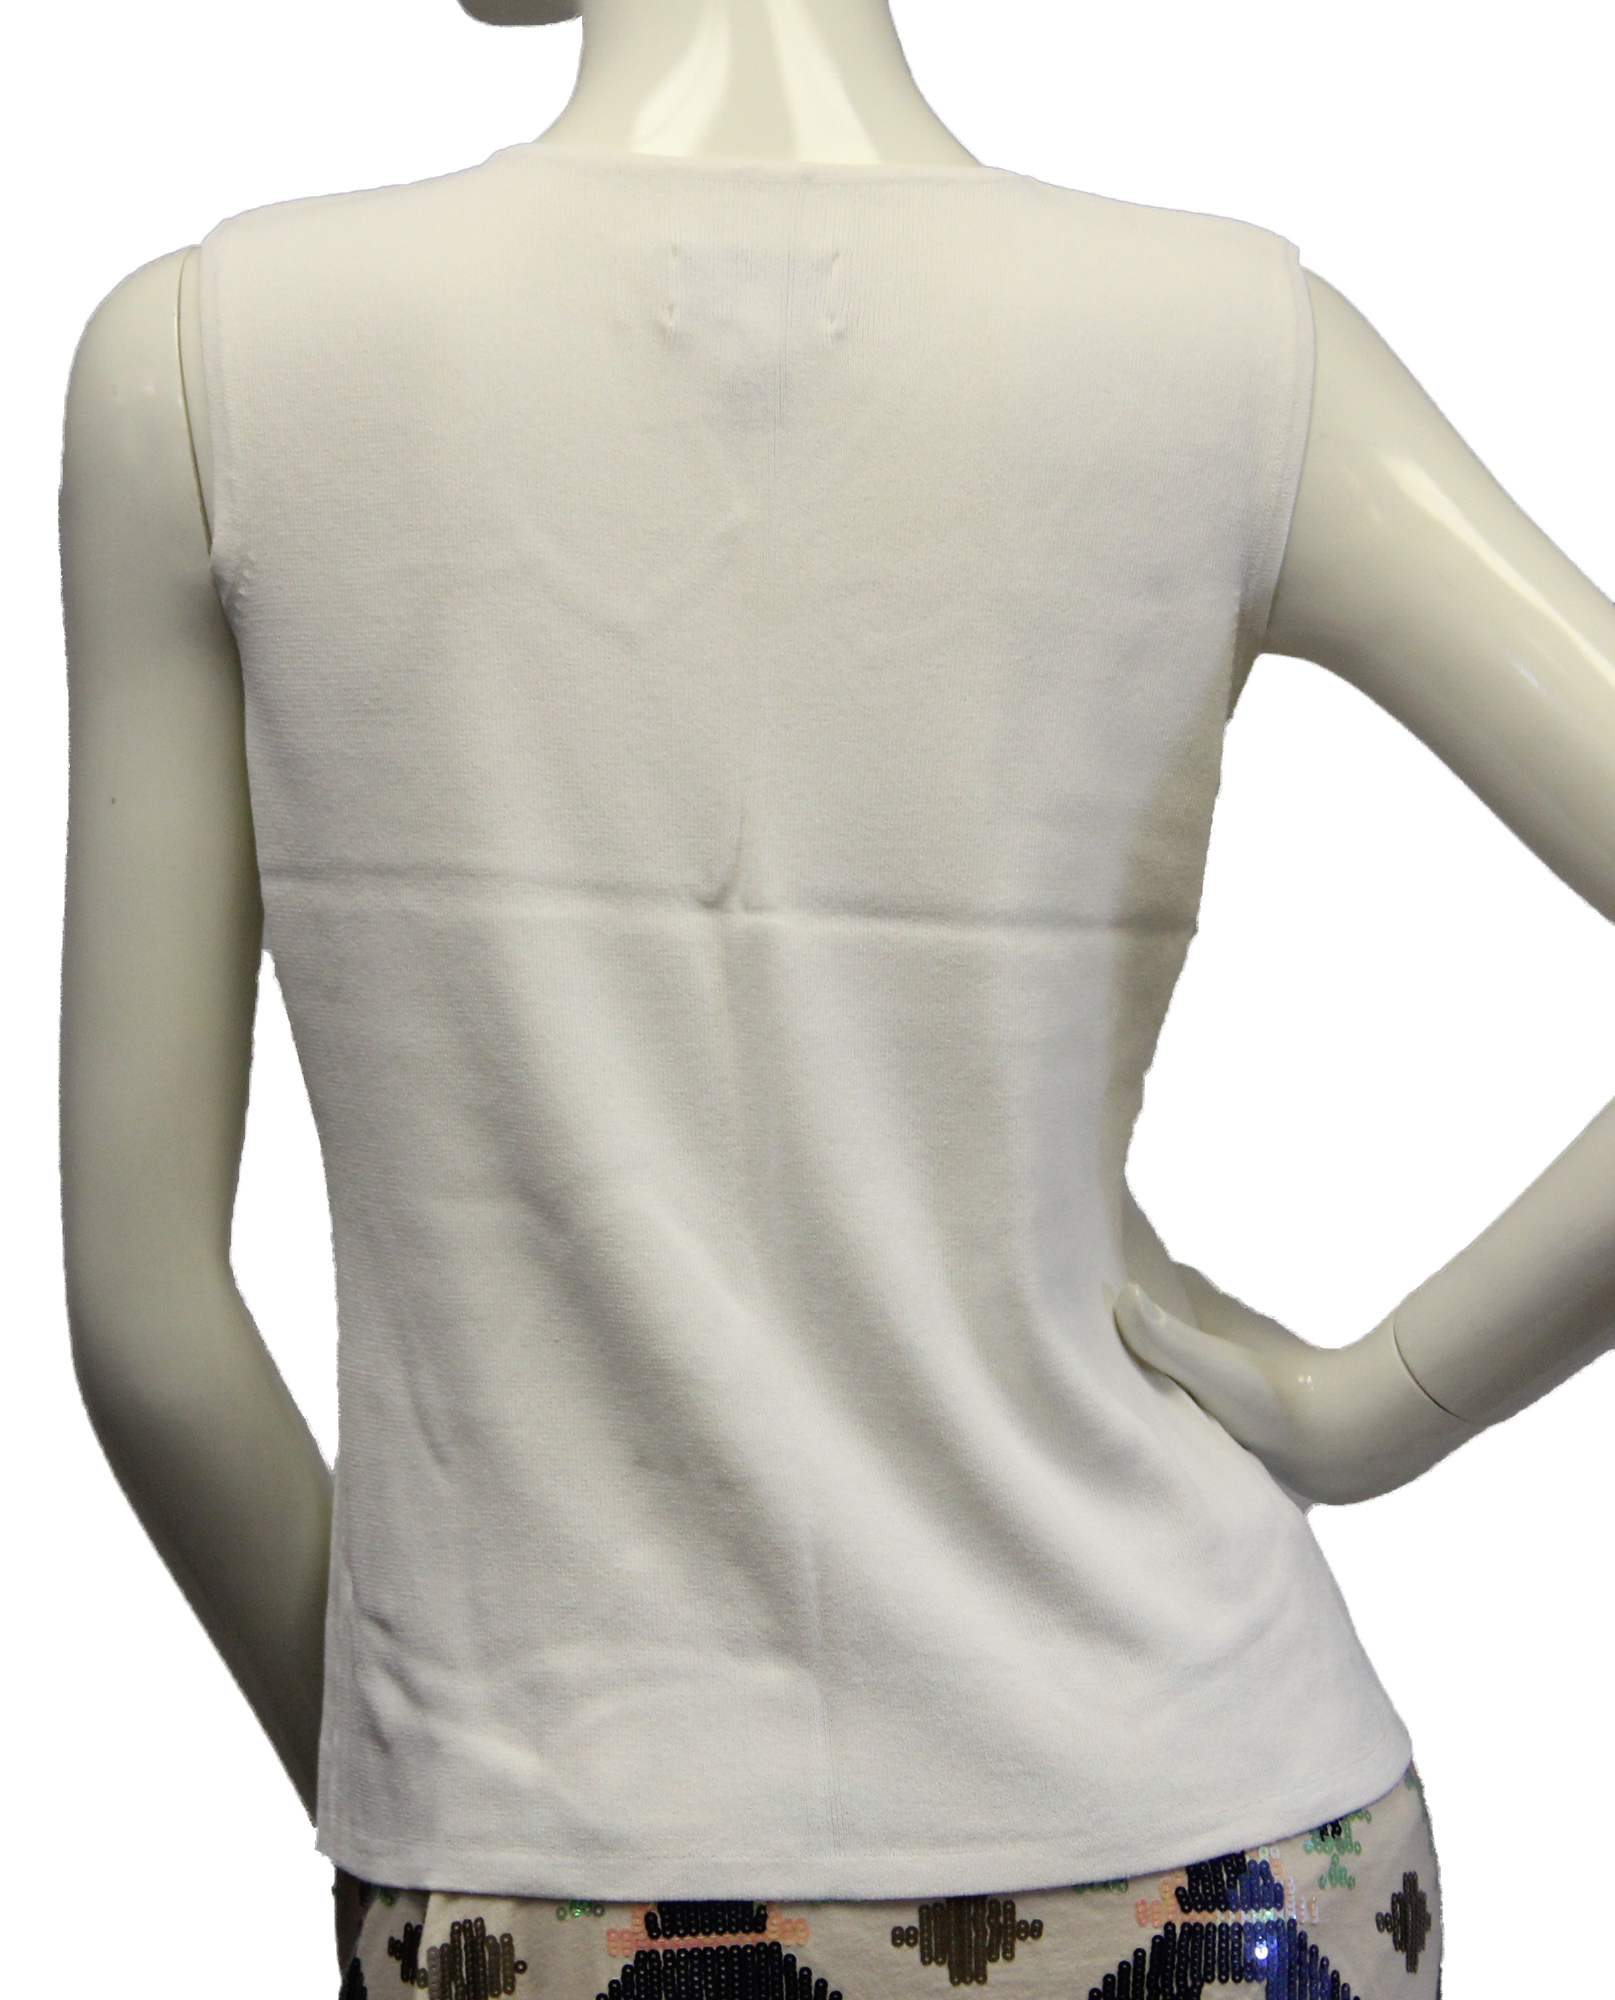 Chico's Innocence White Sweater Tank Top Size 1 (SKU 000069) - Designers On A Dime - 3